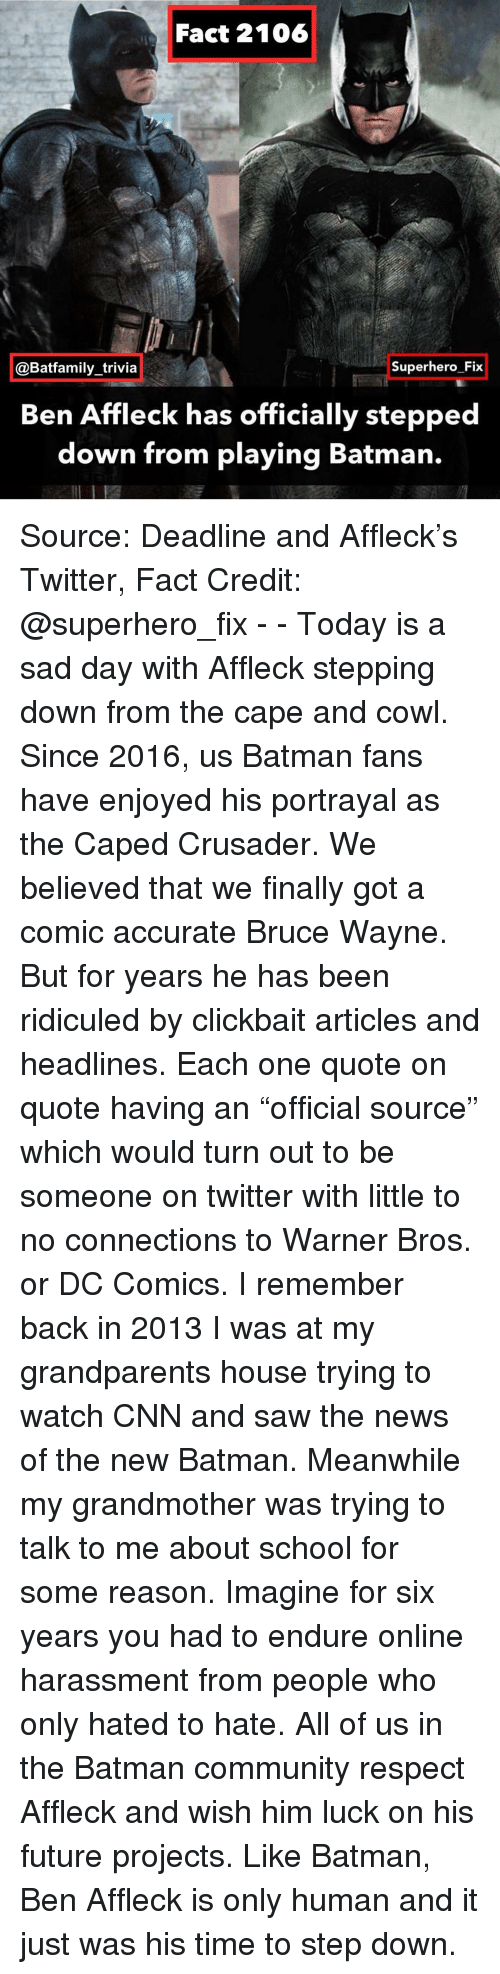 """ridiculed: Fact 2106  @Batfamily_trivia  Superhero Fix  Ben Affleck has officially stepped  down from playing Batman. Source: Deadline and Affleck's Twitter, Fact Credit: @superhero_fix - - Today is a sad day with Affleck stepping down from the cape and cowl. Since 2016, us Batman fans have enjoyed his portrayal as the Caped Crusader. We believed that we finally got a comic accurate Bruce Wayne. But for years he has been ridiculed by clickbait articles and headlines. Each one quote on quote having an """"official source"""" which would turn out to be someone on twitter with little to no connections to Warner Bros. or DC Comics. I remember back in 2013 I was at my grandparents house trying to watch CNN and saw the news of the new Batman. Meanwhile my grandmother was trying to talk to me about school for some reason. Imagine for six years you had to endure online harassment from people who only hated to hate. All of us in the Batman community respect Affleck and wish him luck on his future projects. Like Batman, Ben Affleck is only human and it just was his time to step down."""